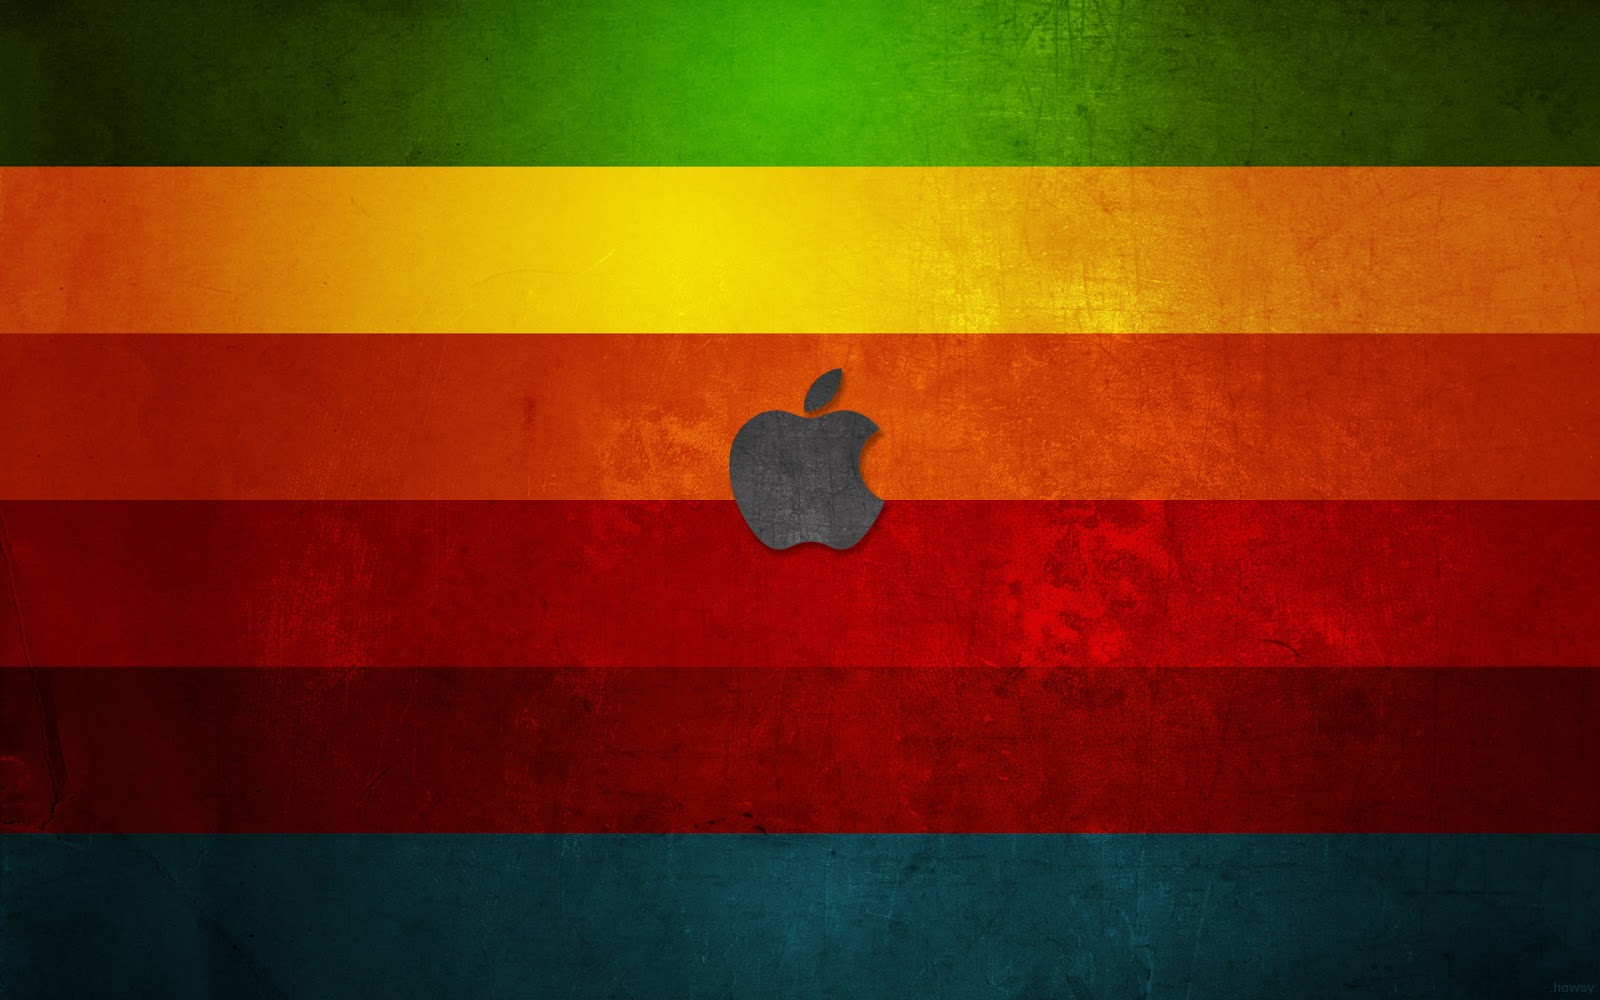 Ipad Iphone Hd Wallpaper Free: HD WALLPAPER: Apple Mac Hd WallPapers